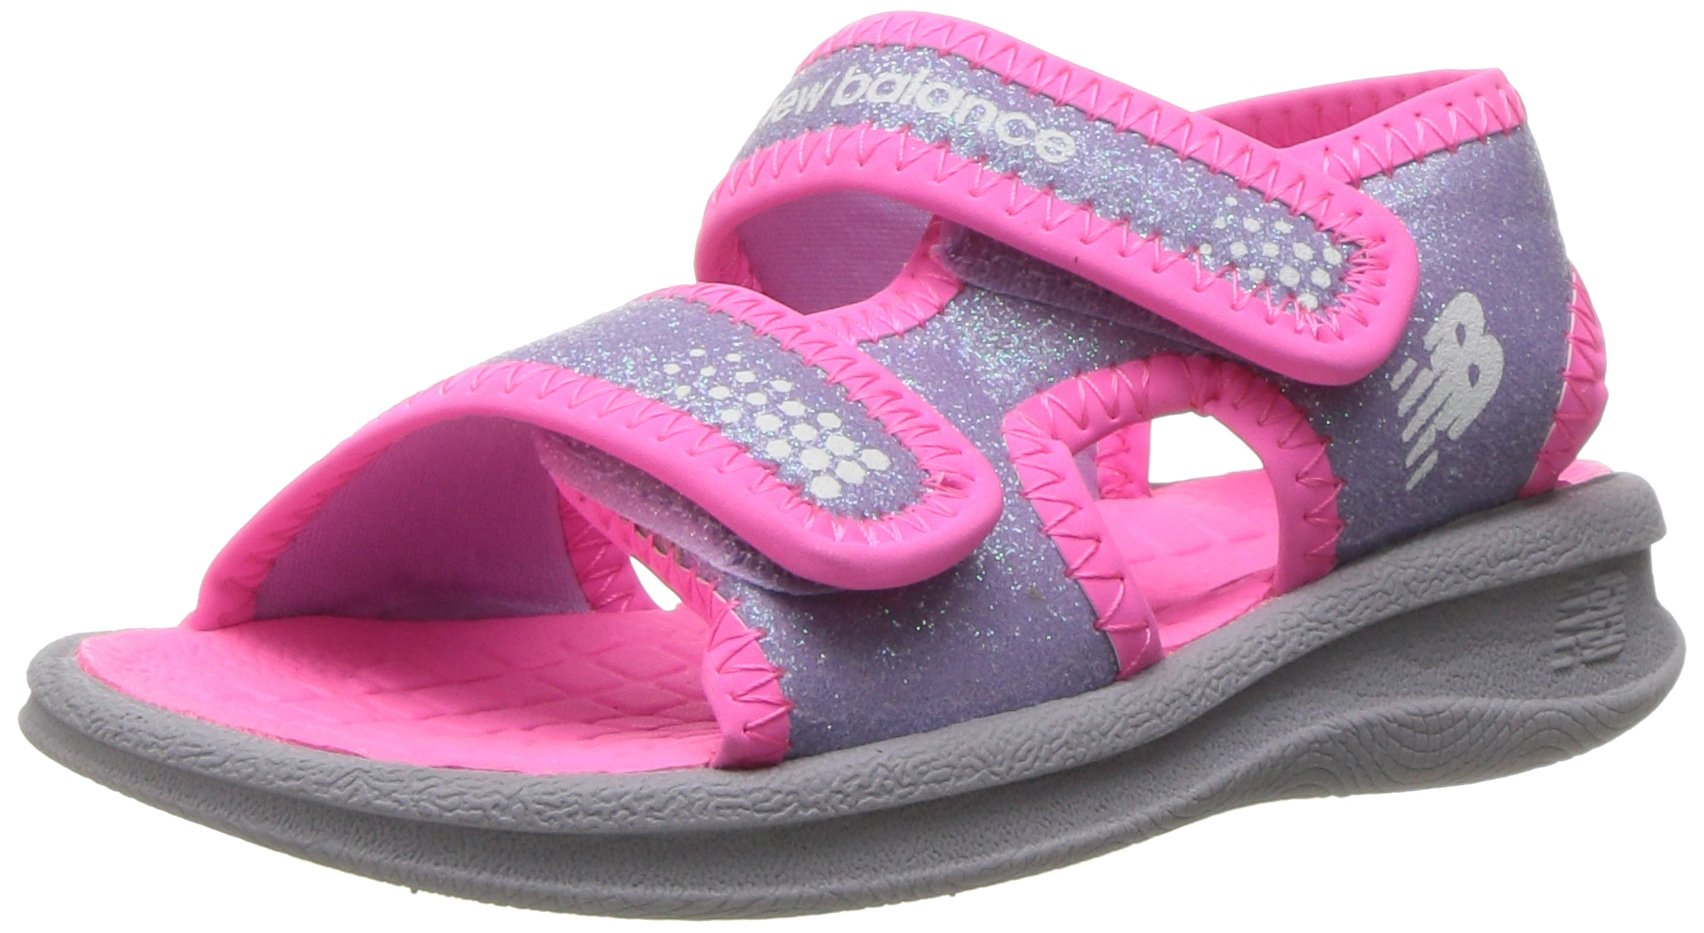 New Balance Girls' Sport Sandal Water Shoe, Grey/Pink, 2 M US Little Kid